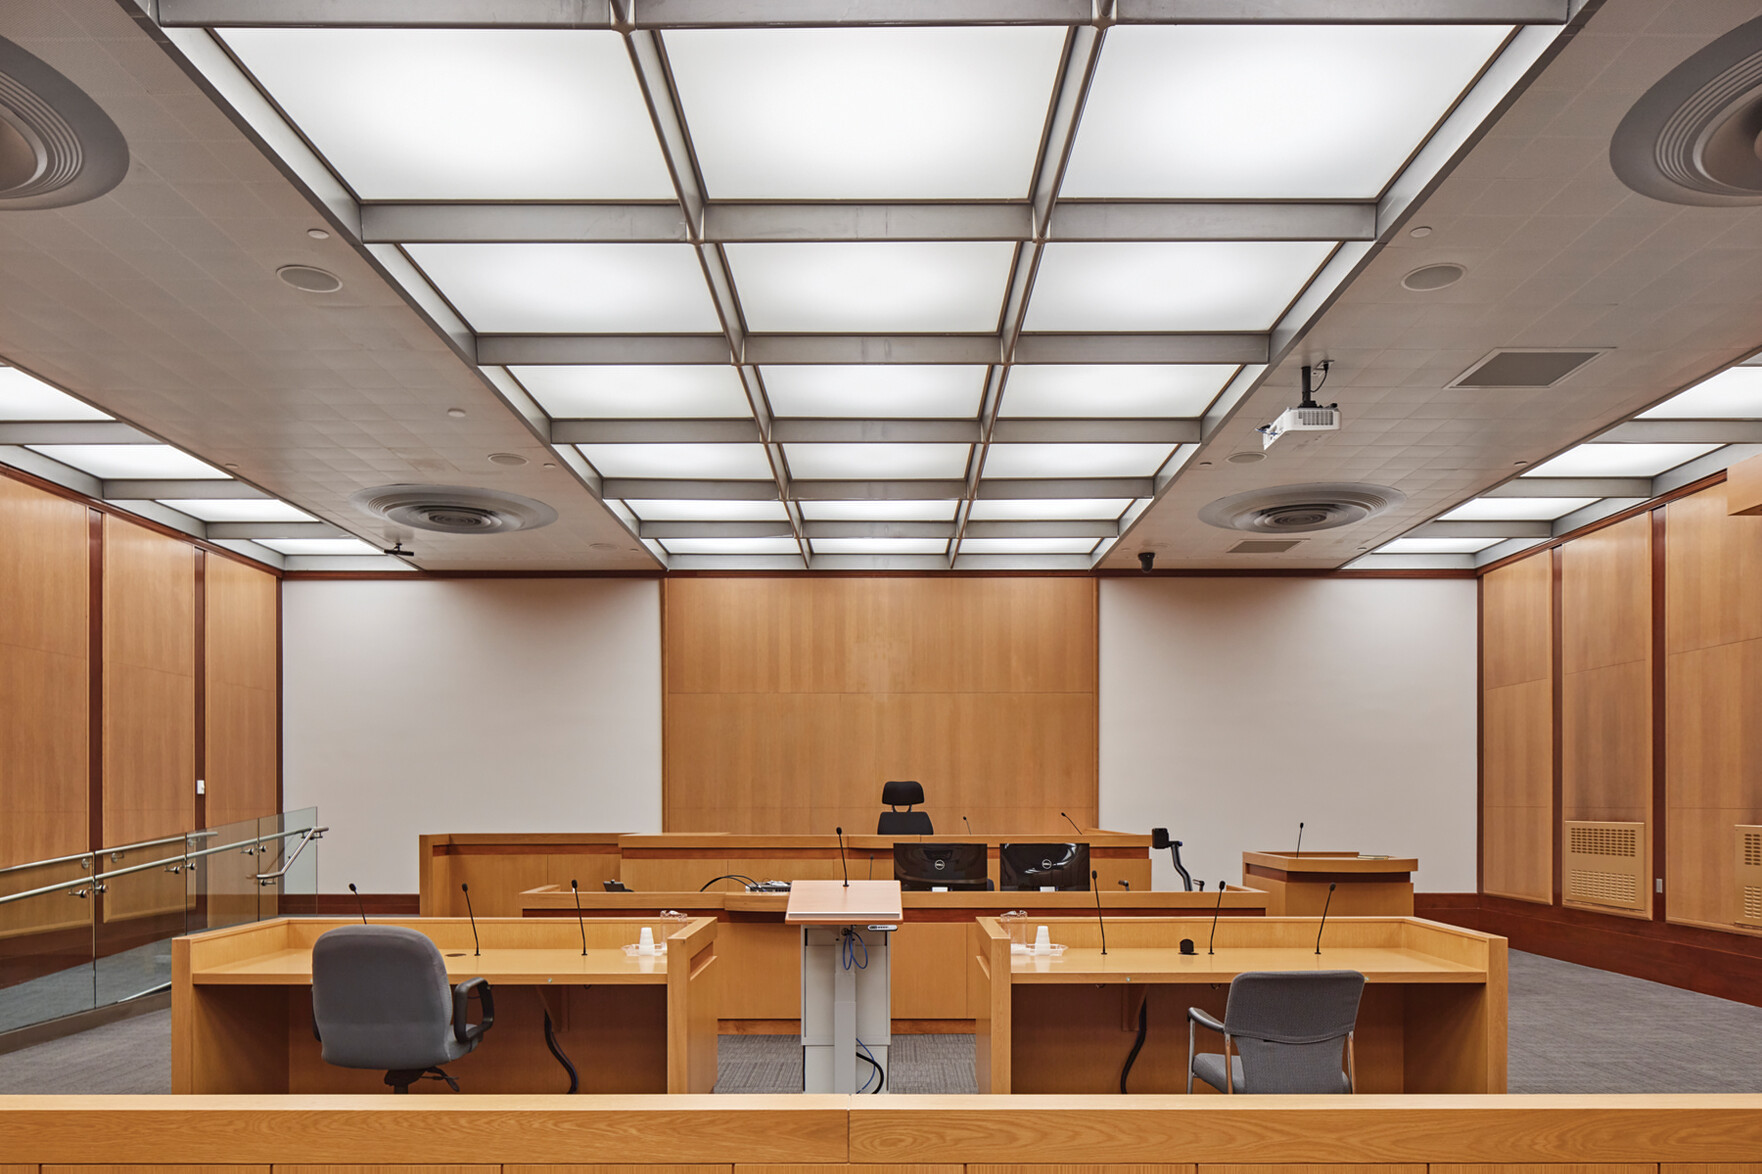 Courtroom with millwork benches for prosecution, defense, judge and witness, with wood paneling on walls and grid panel lighting